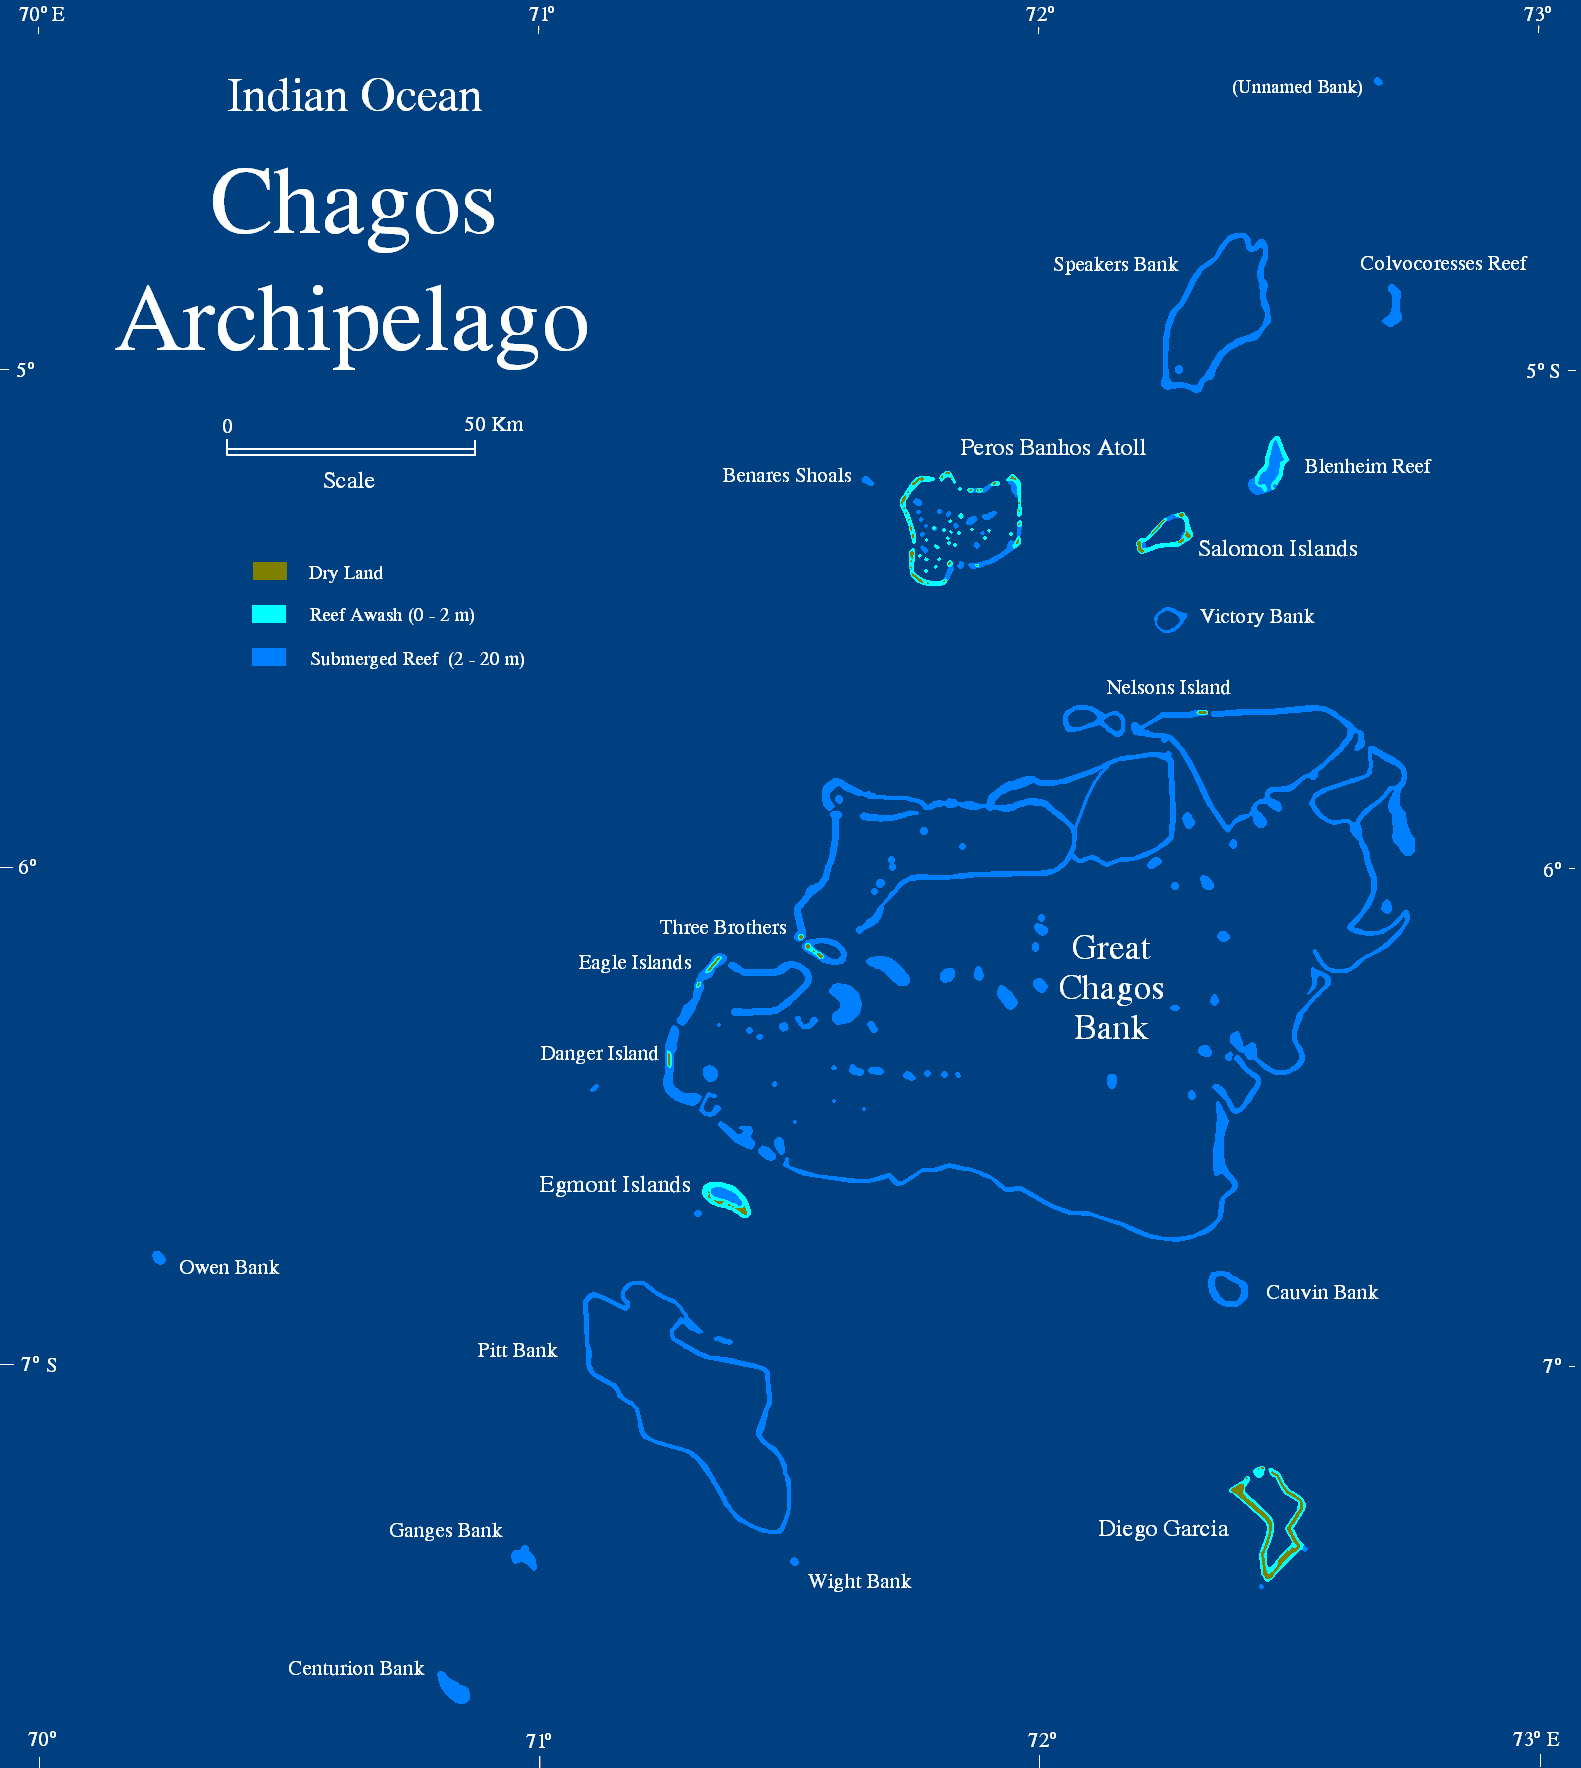 IASbaba's Mind Map Chagos Archipelago - Issue, 24th January